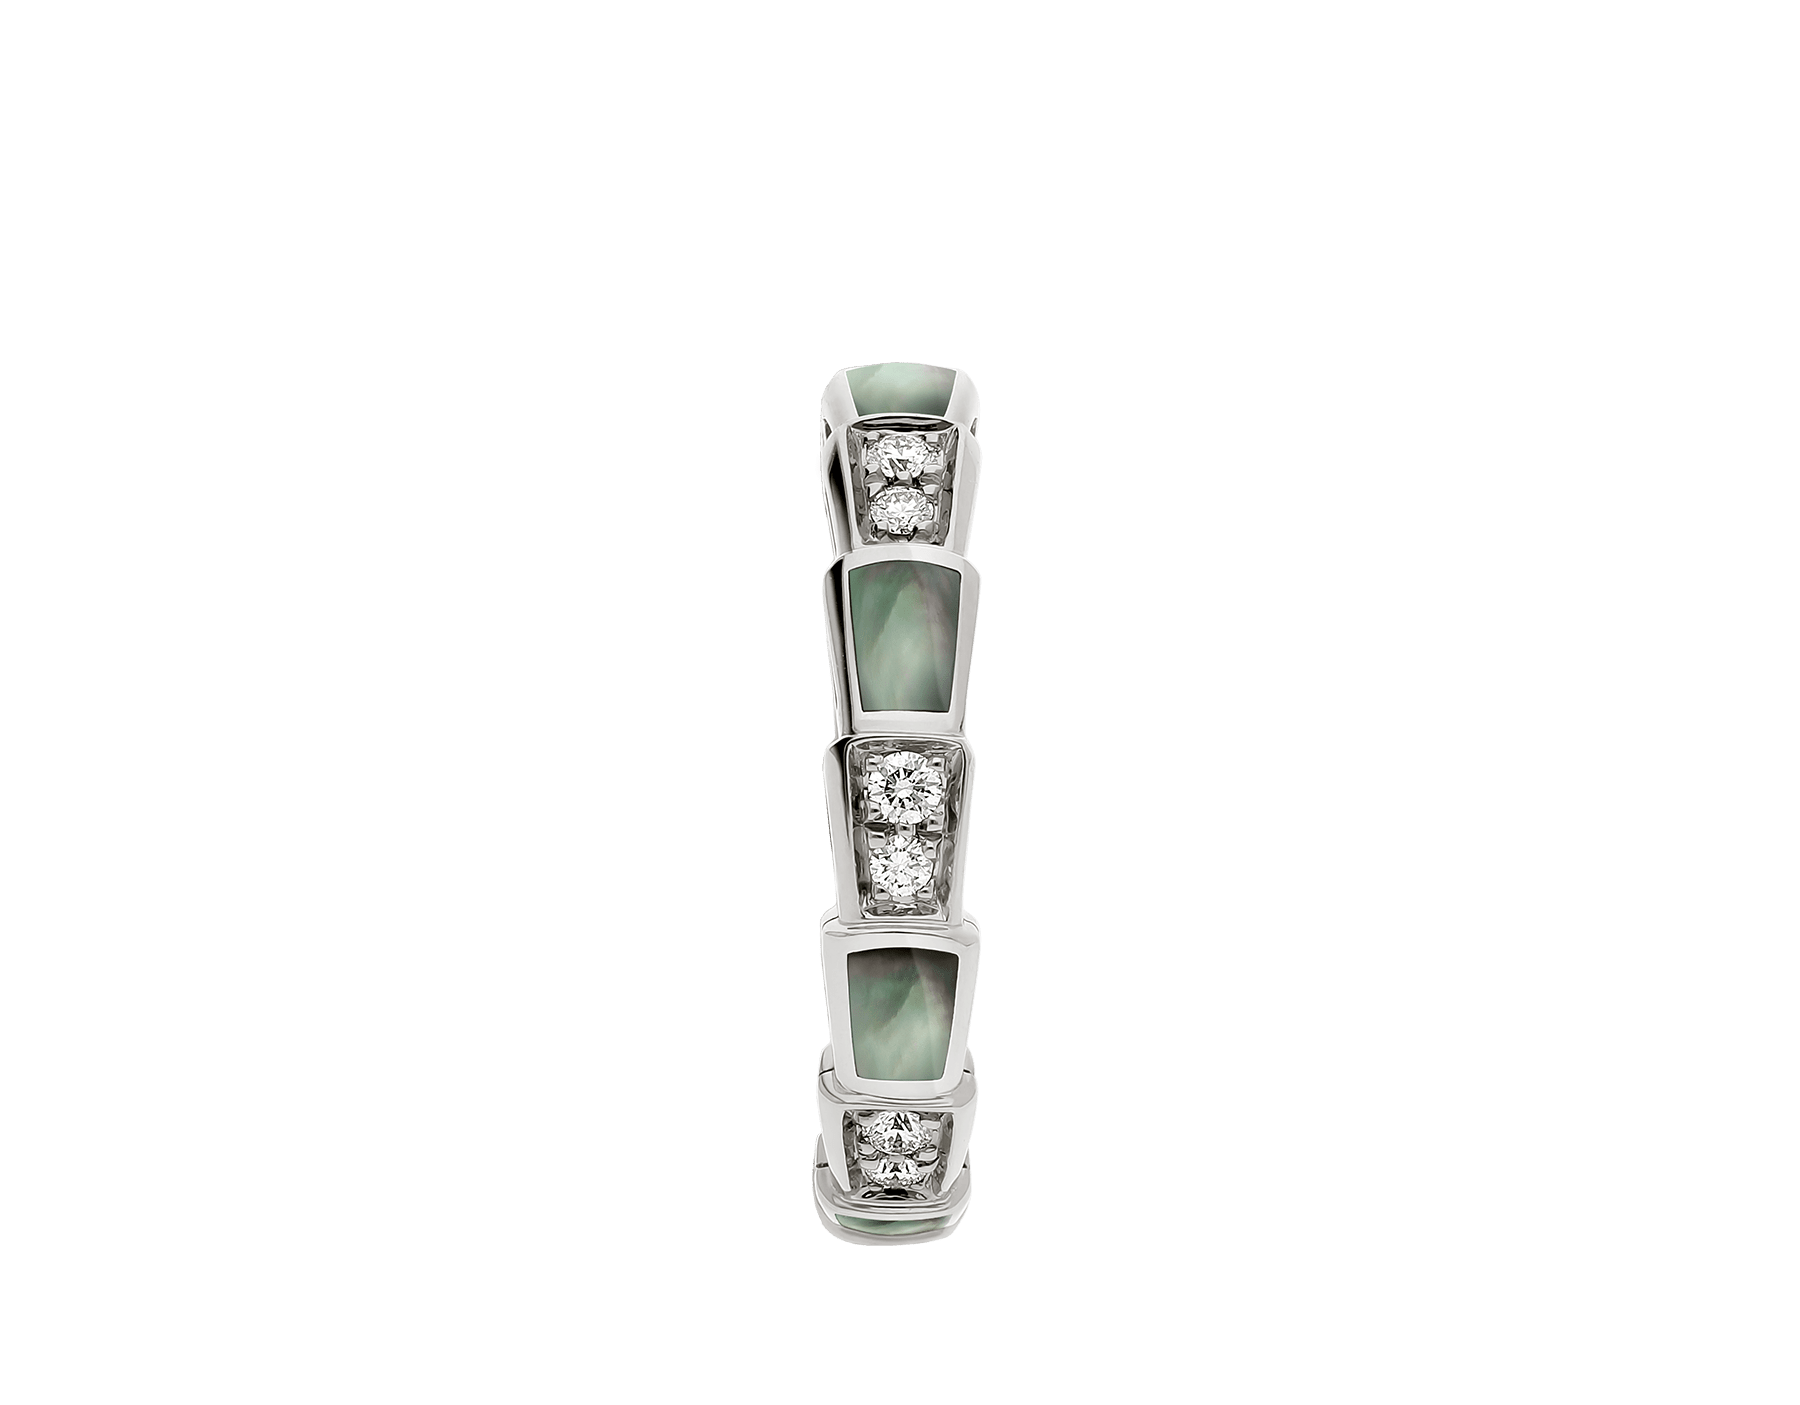 Serpenti Viper band ring in 18 kt white gold set with grey mother-of-pearl elements and pavé diamonds . AN857934 image 2